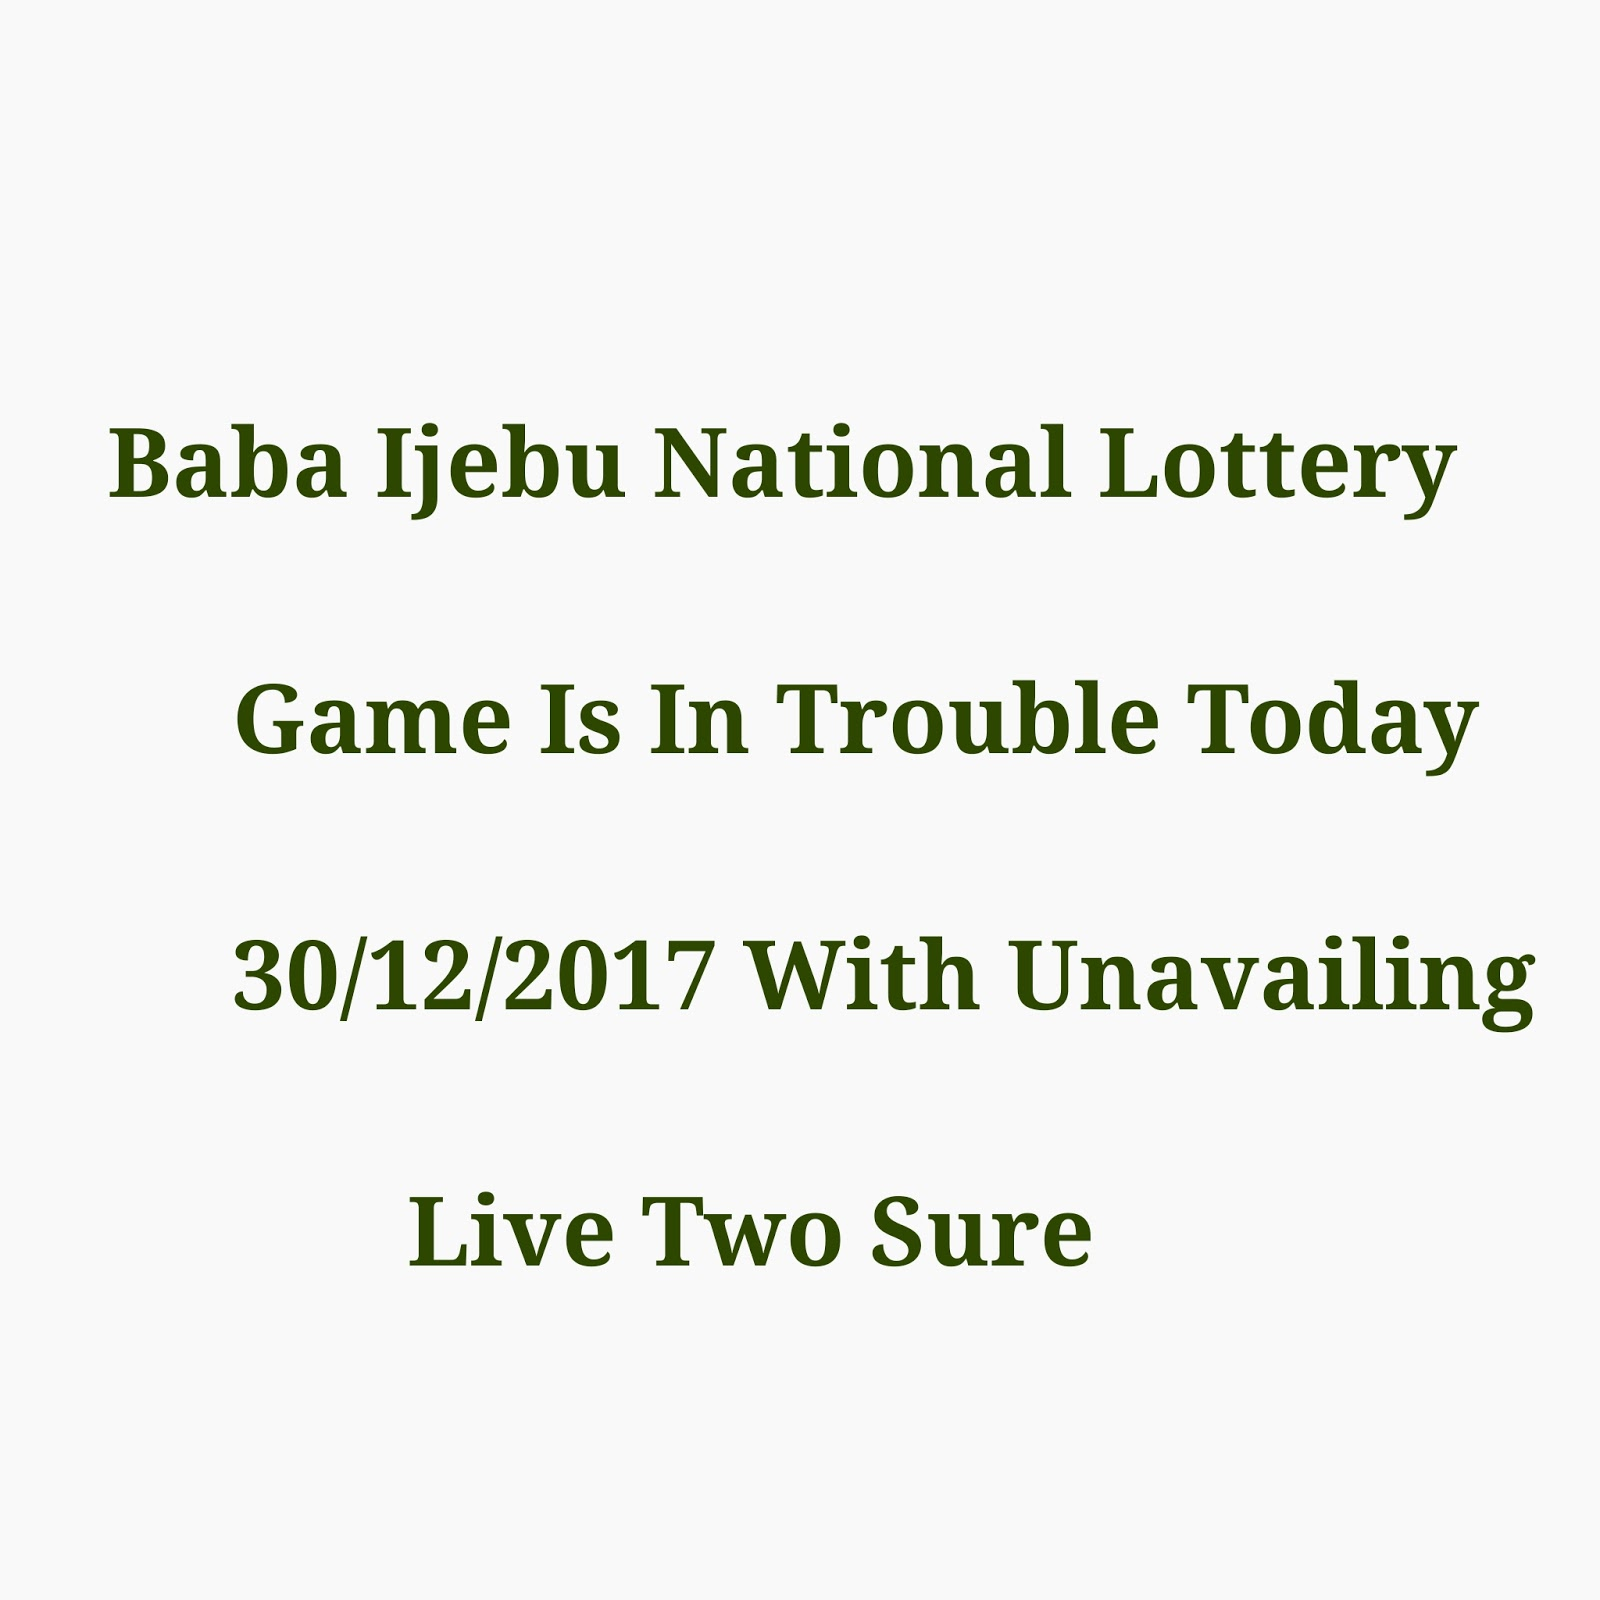 Baba Ijebu National Lottery Game Is In Trouble Today 30/12/2017 With